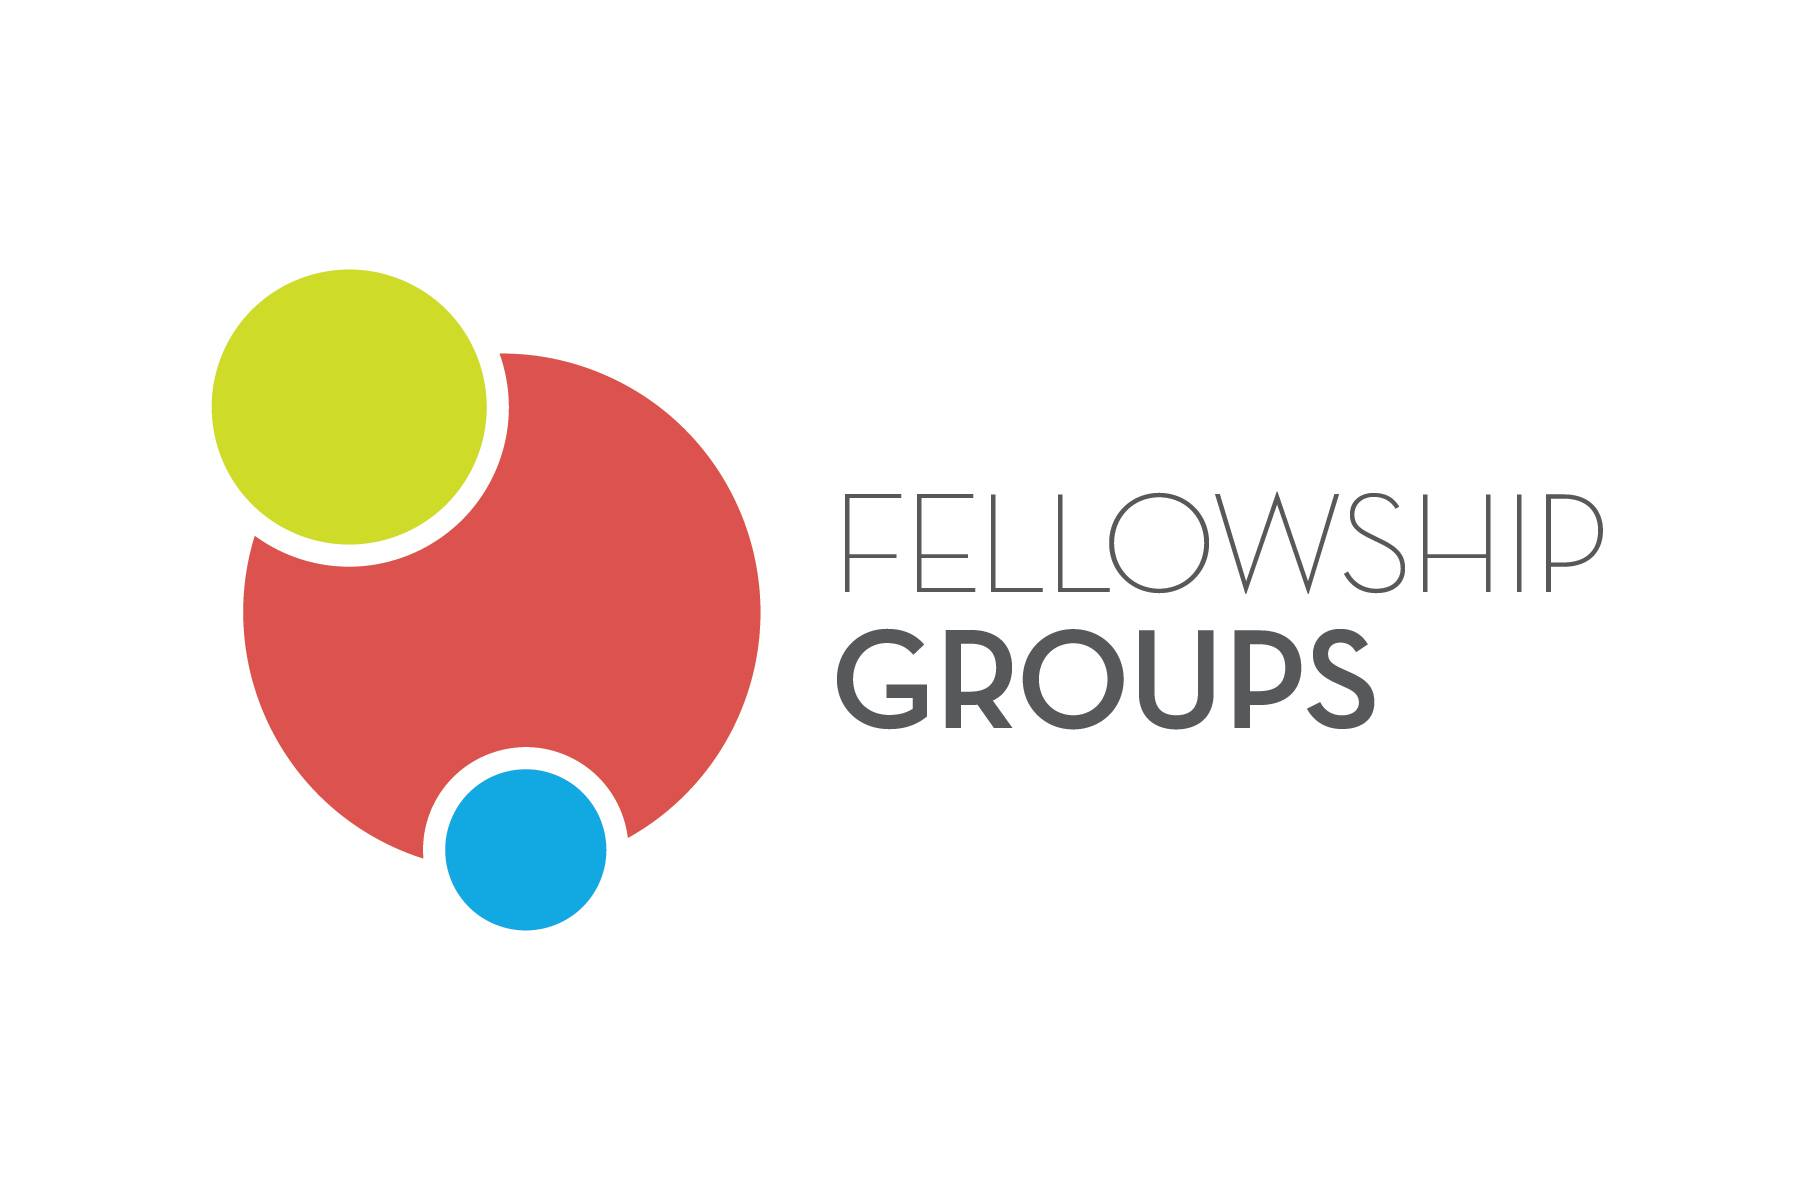 fellowship groups graphics